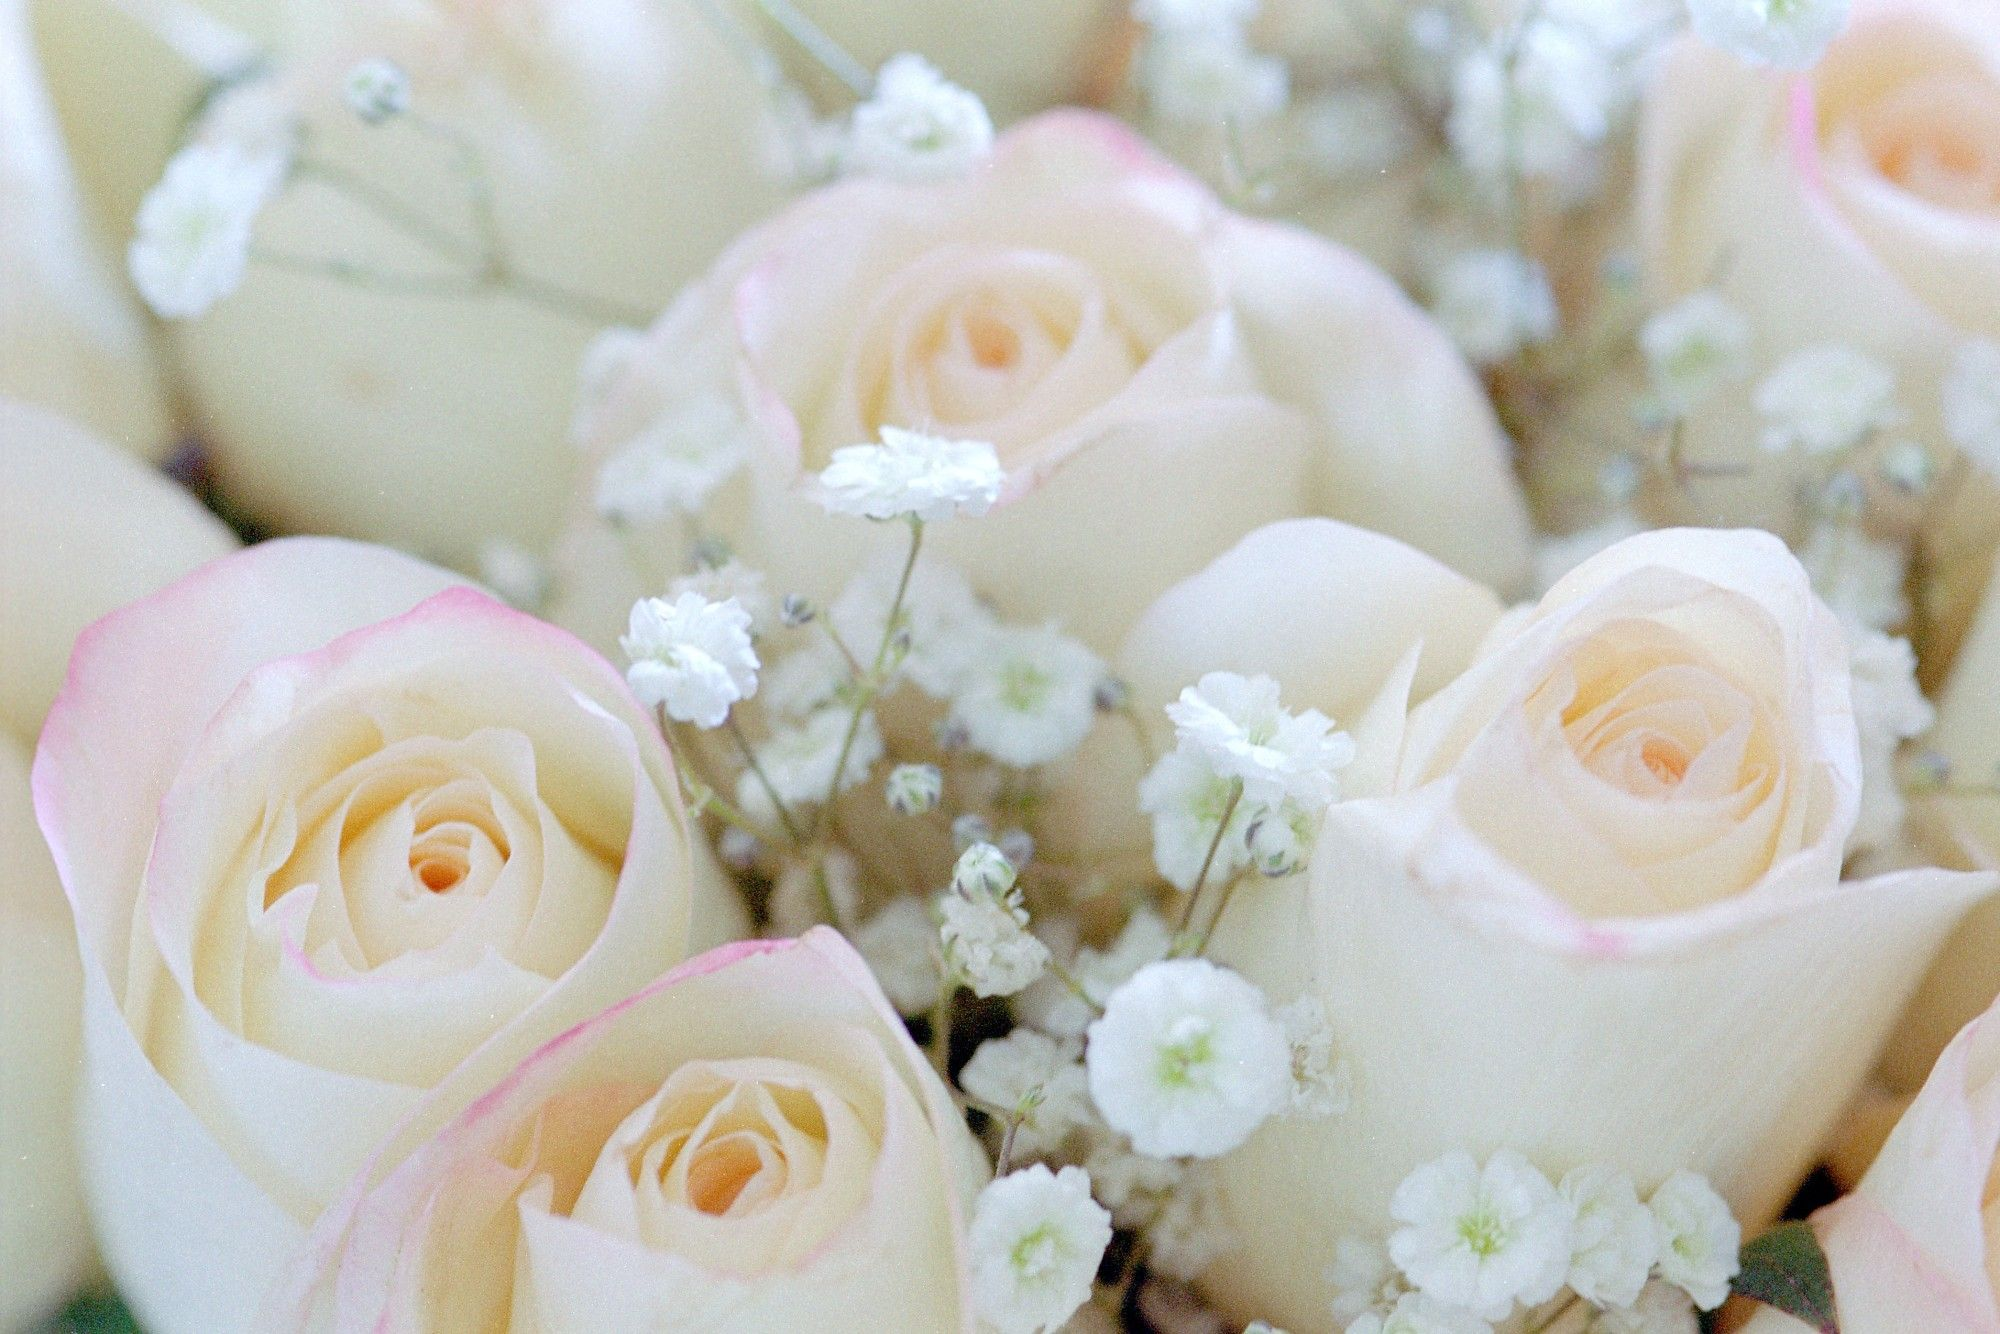 Baby Breath Flowers Meaning Beautiful Flowers Flowers Rose Flower